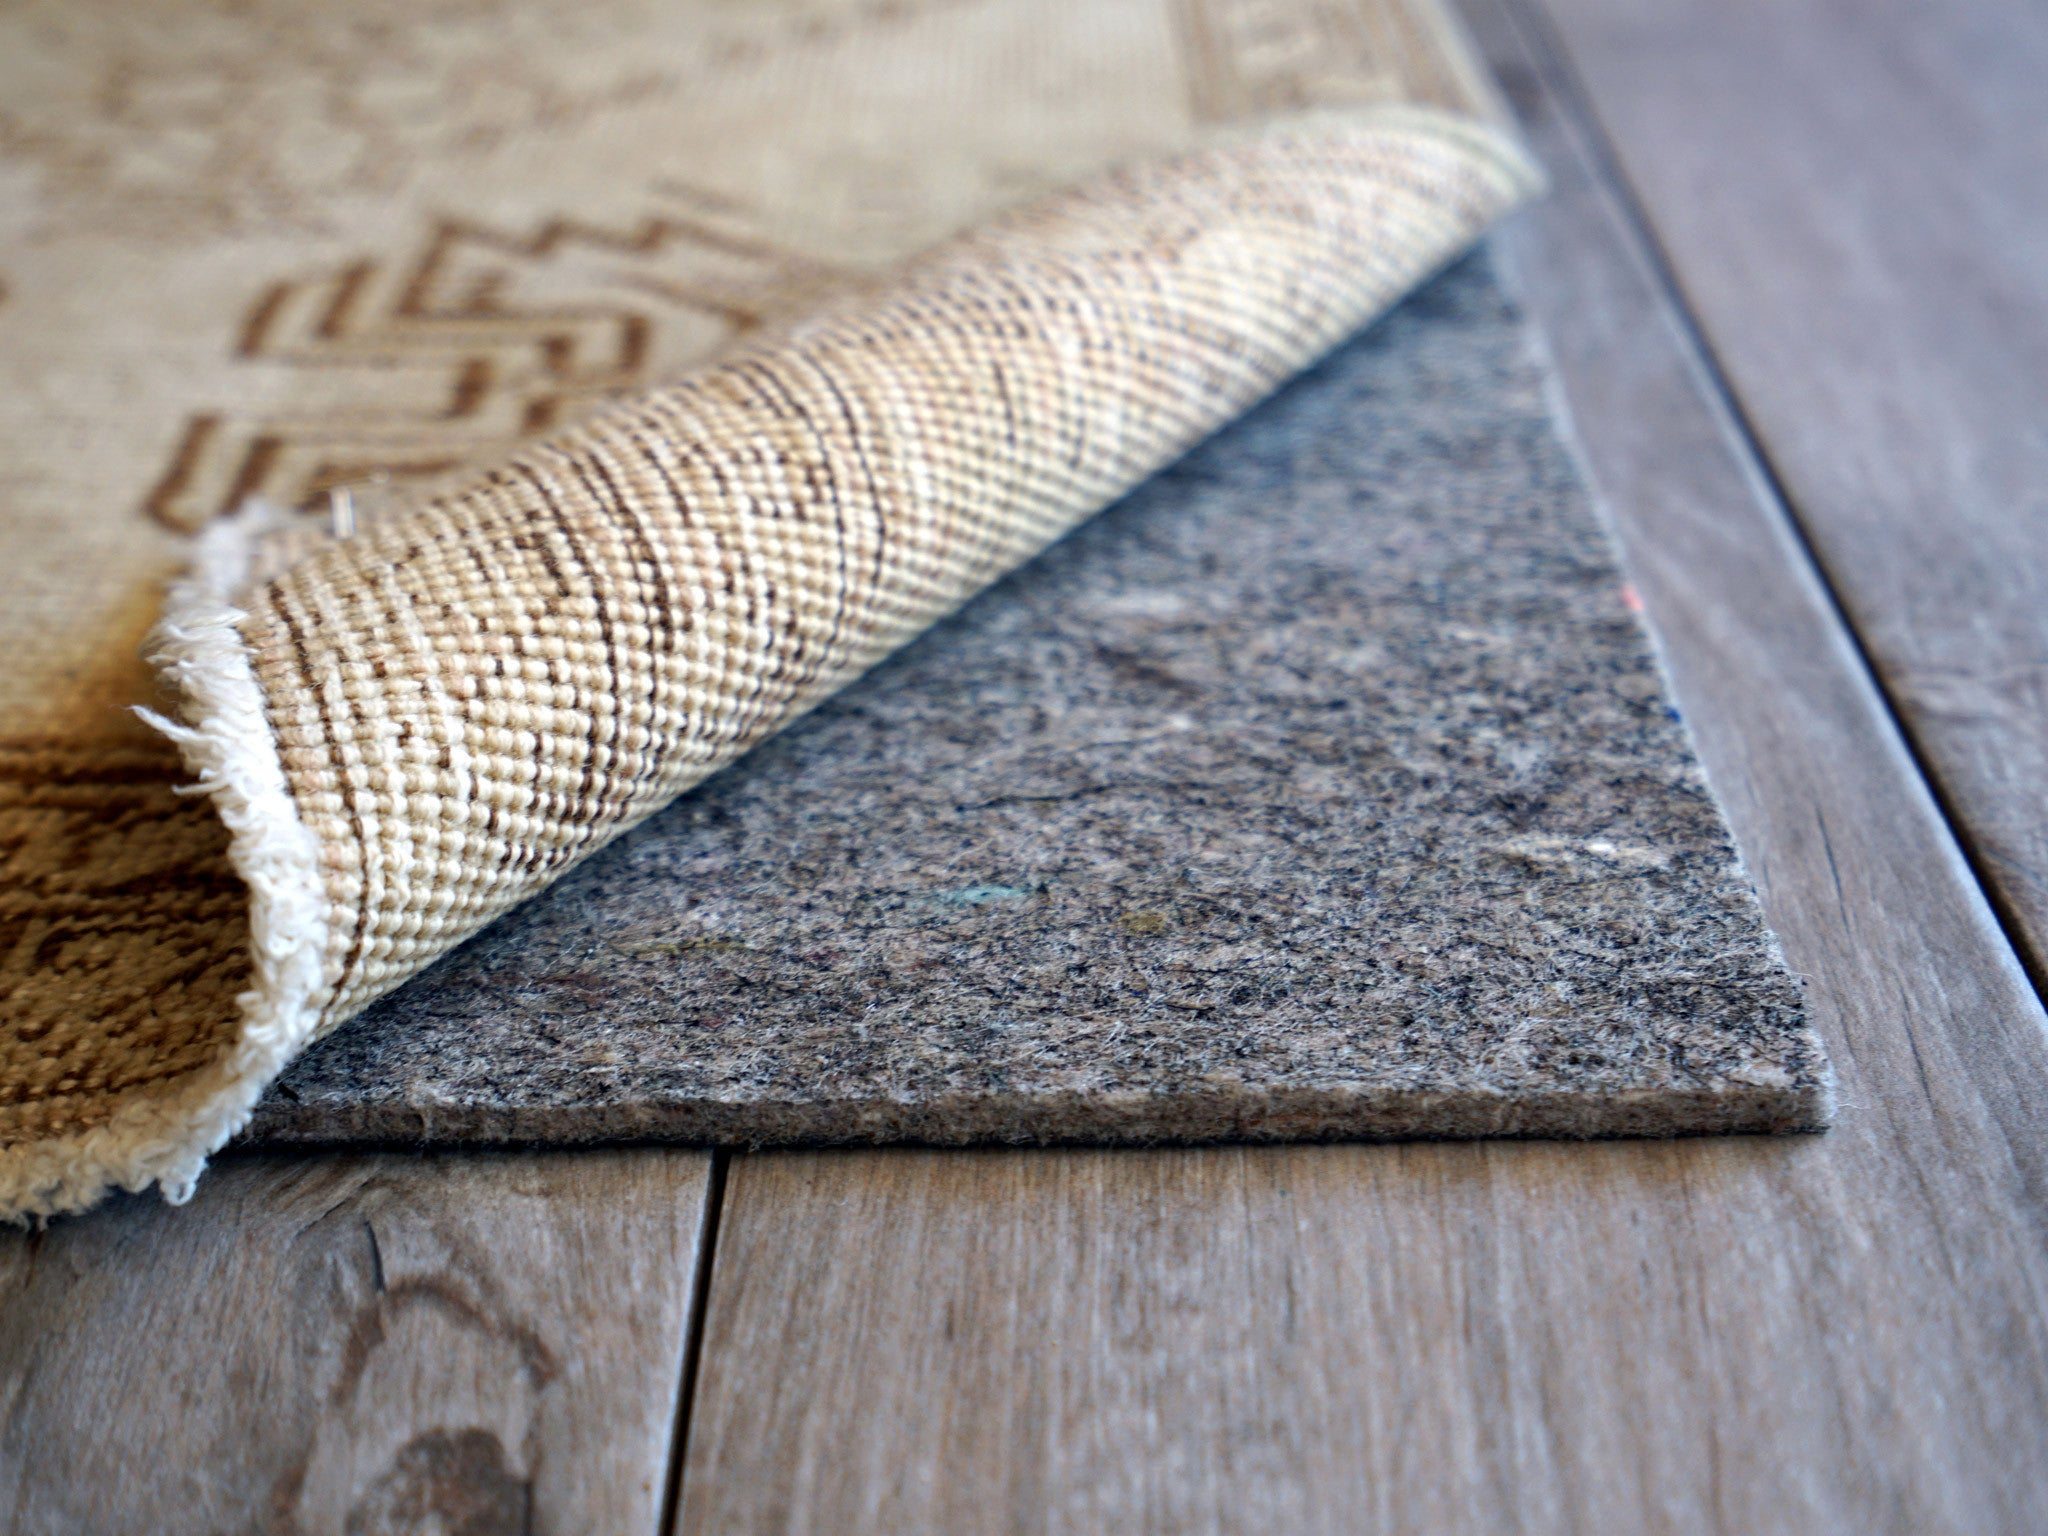 Contour Lock Rug Pads for Laminate Floors